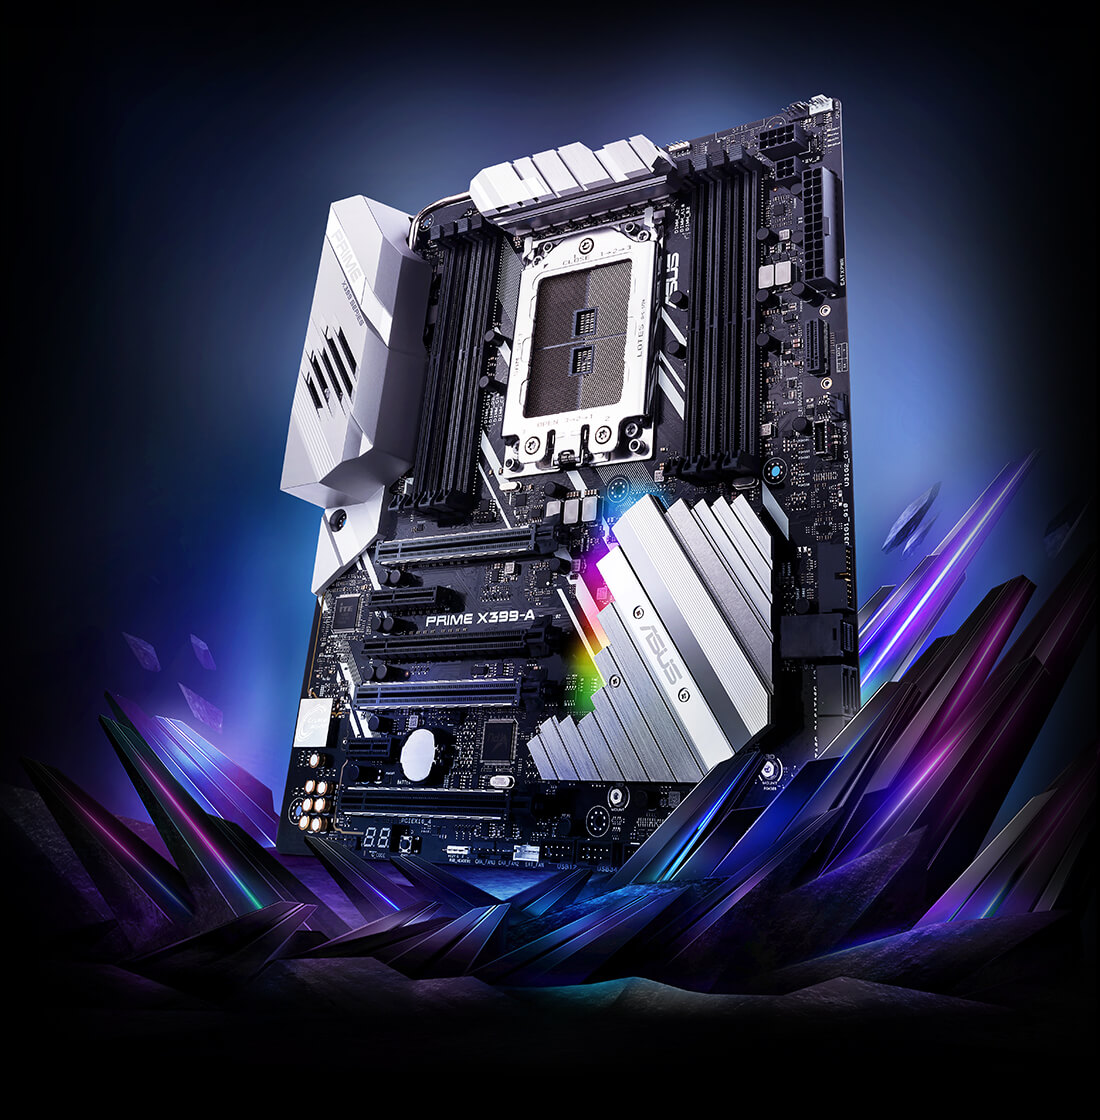 PRIME X399-A | Motherboards | ASUS USA